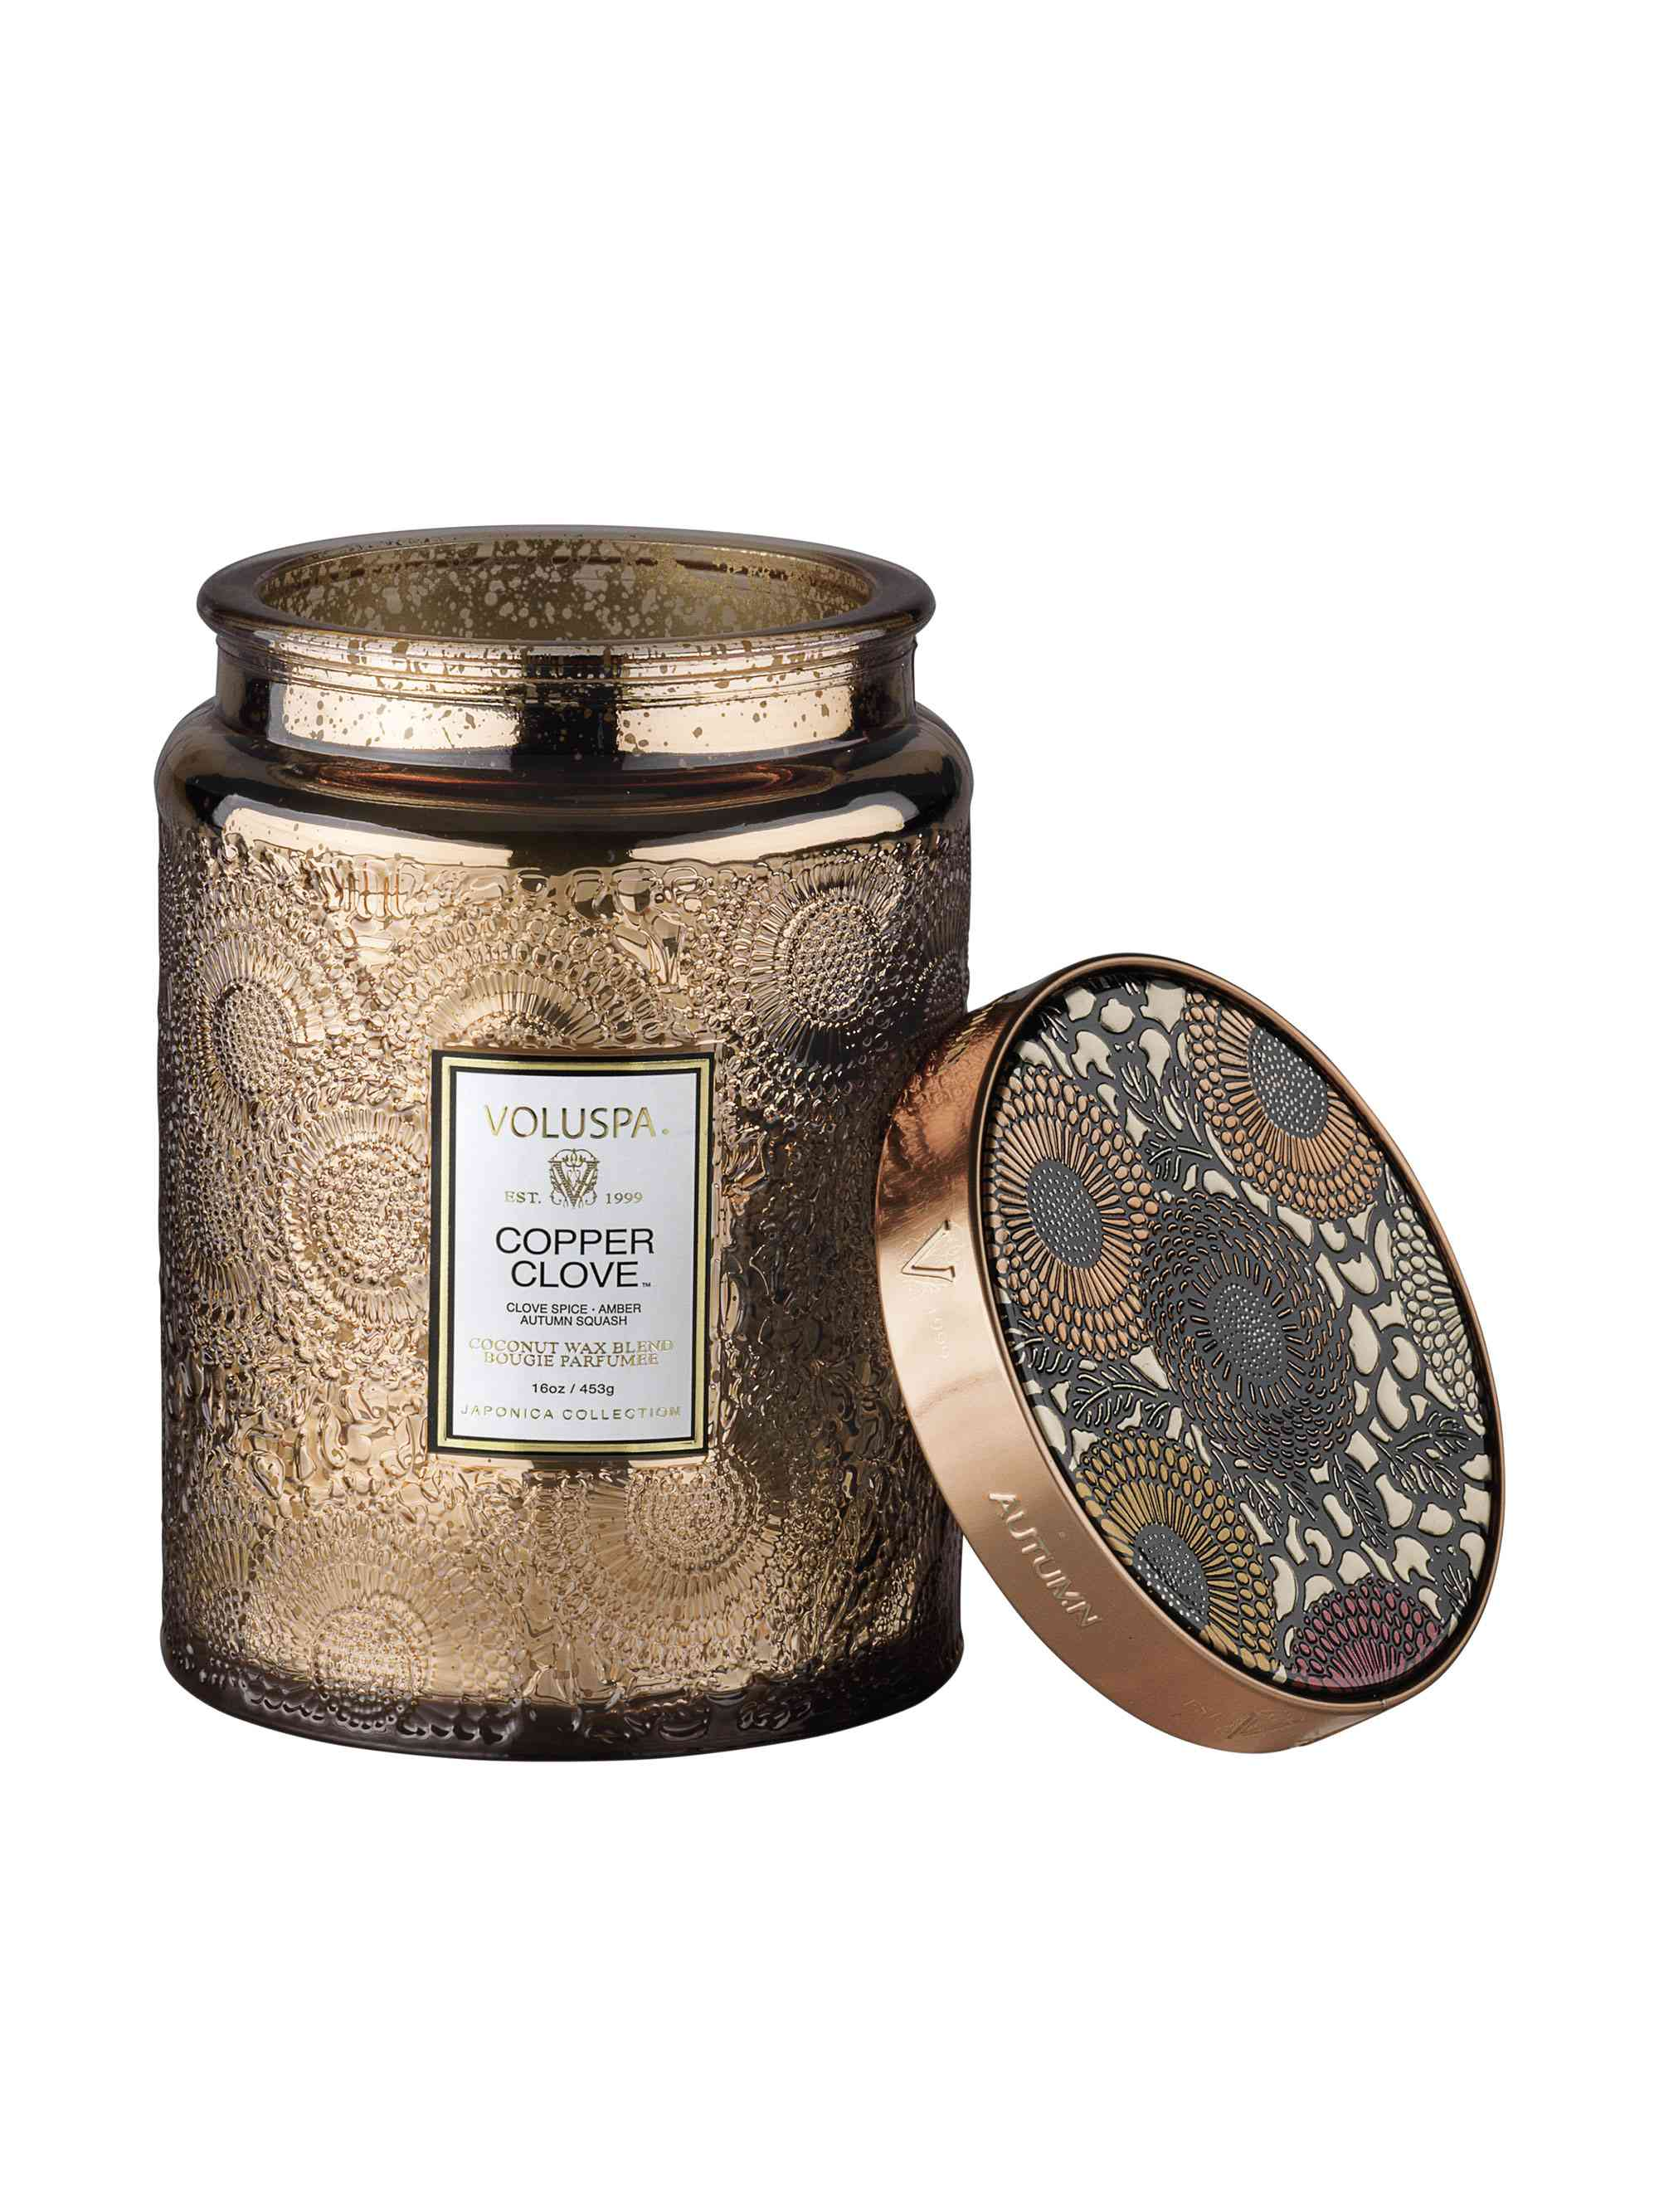 voluspa copper clove glass candle